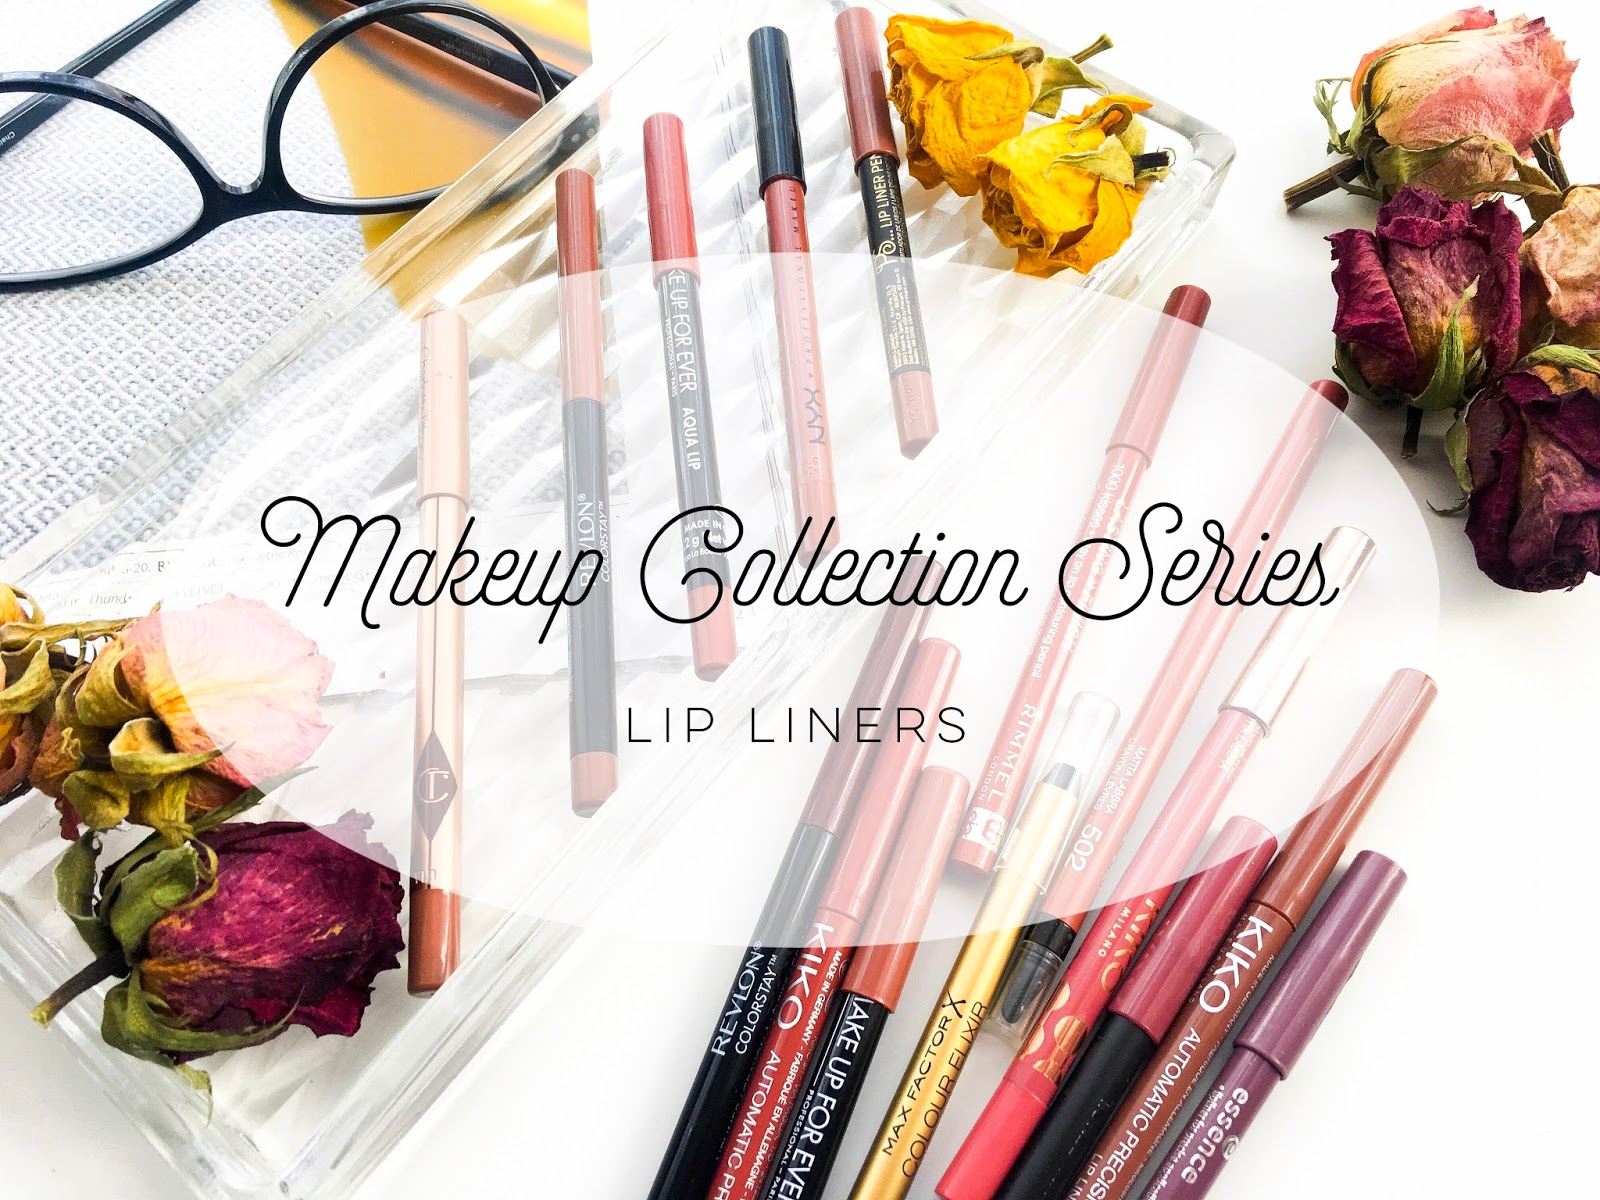 lip liners, lip liner collection, ummbaby makeup collection lip liners